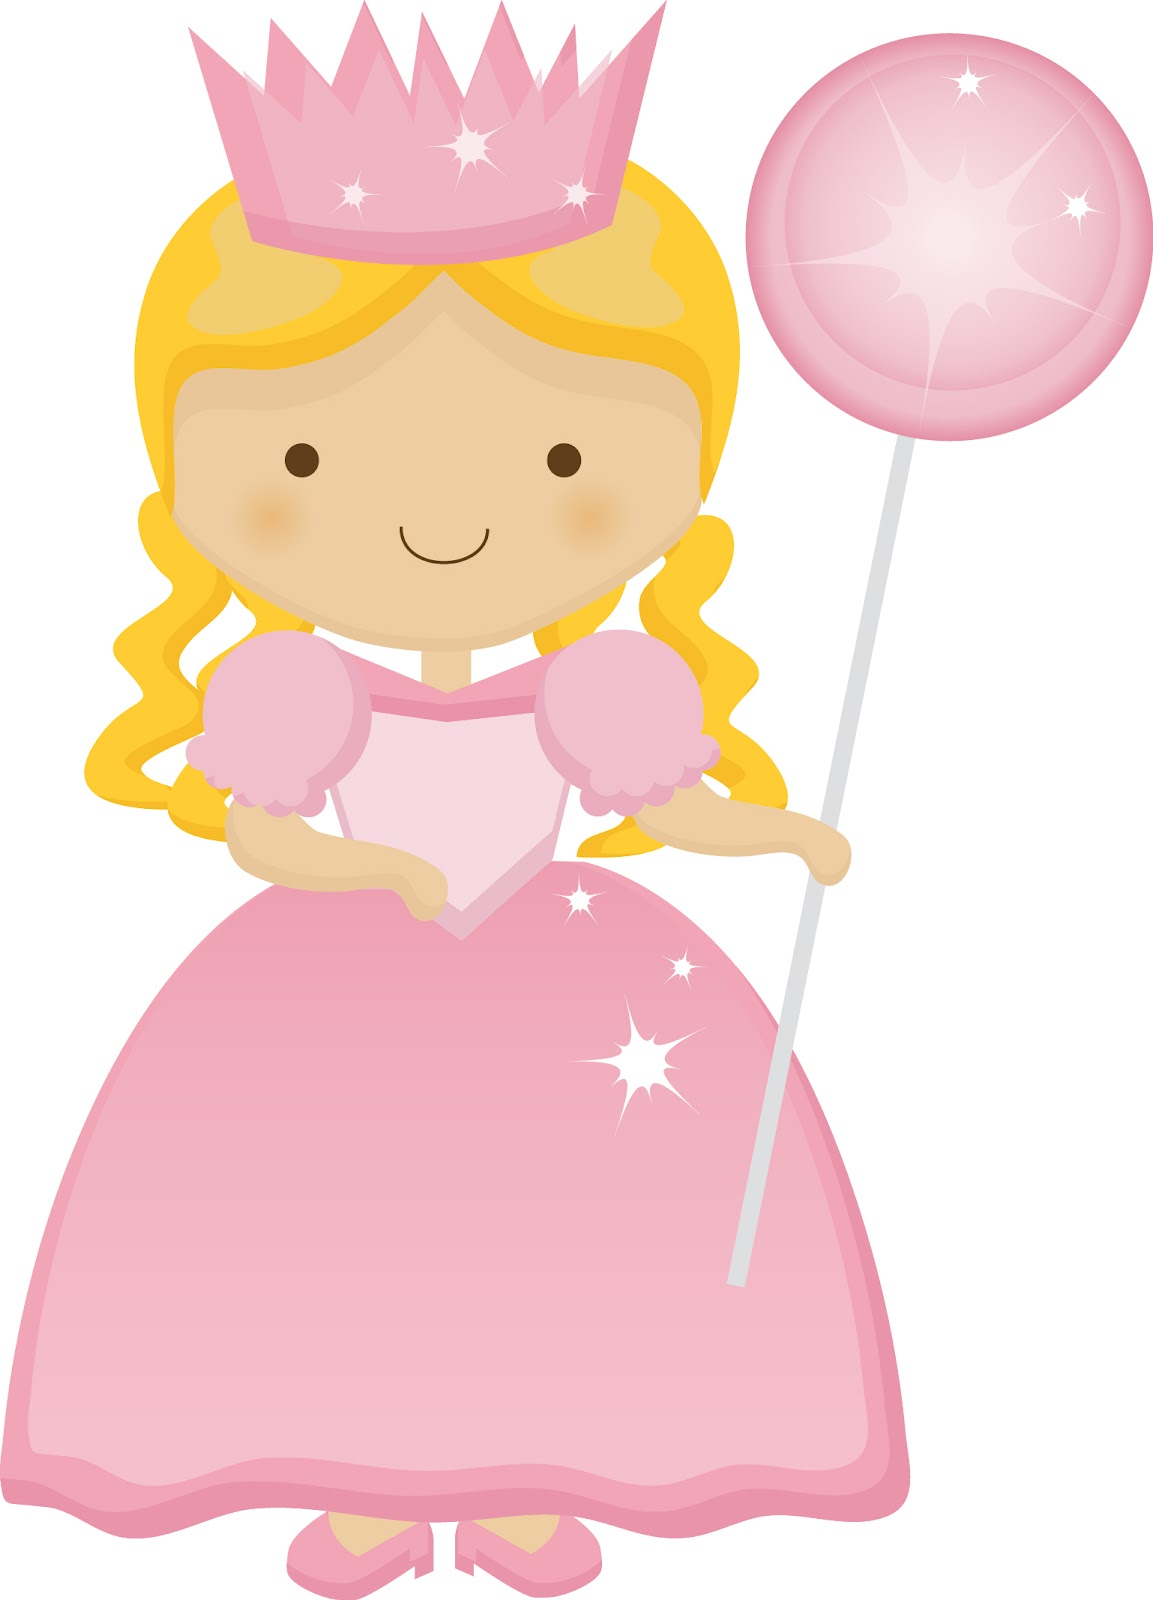 Free glinda cliparts download. Witch clipart good witch